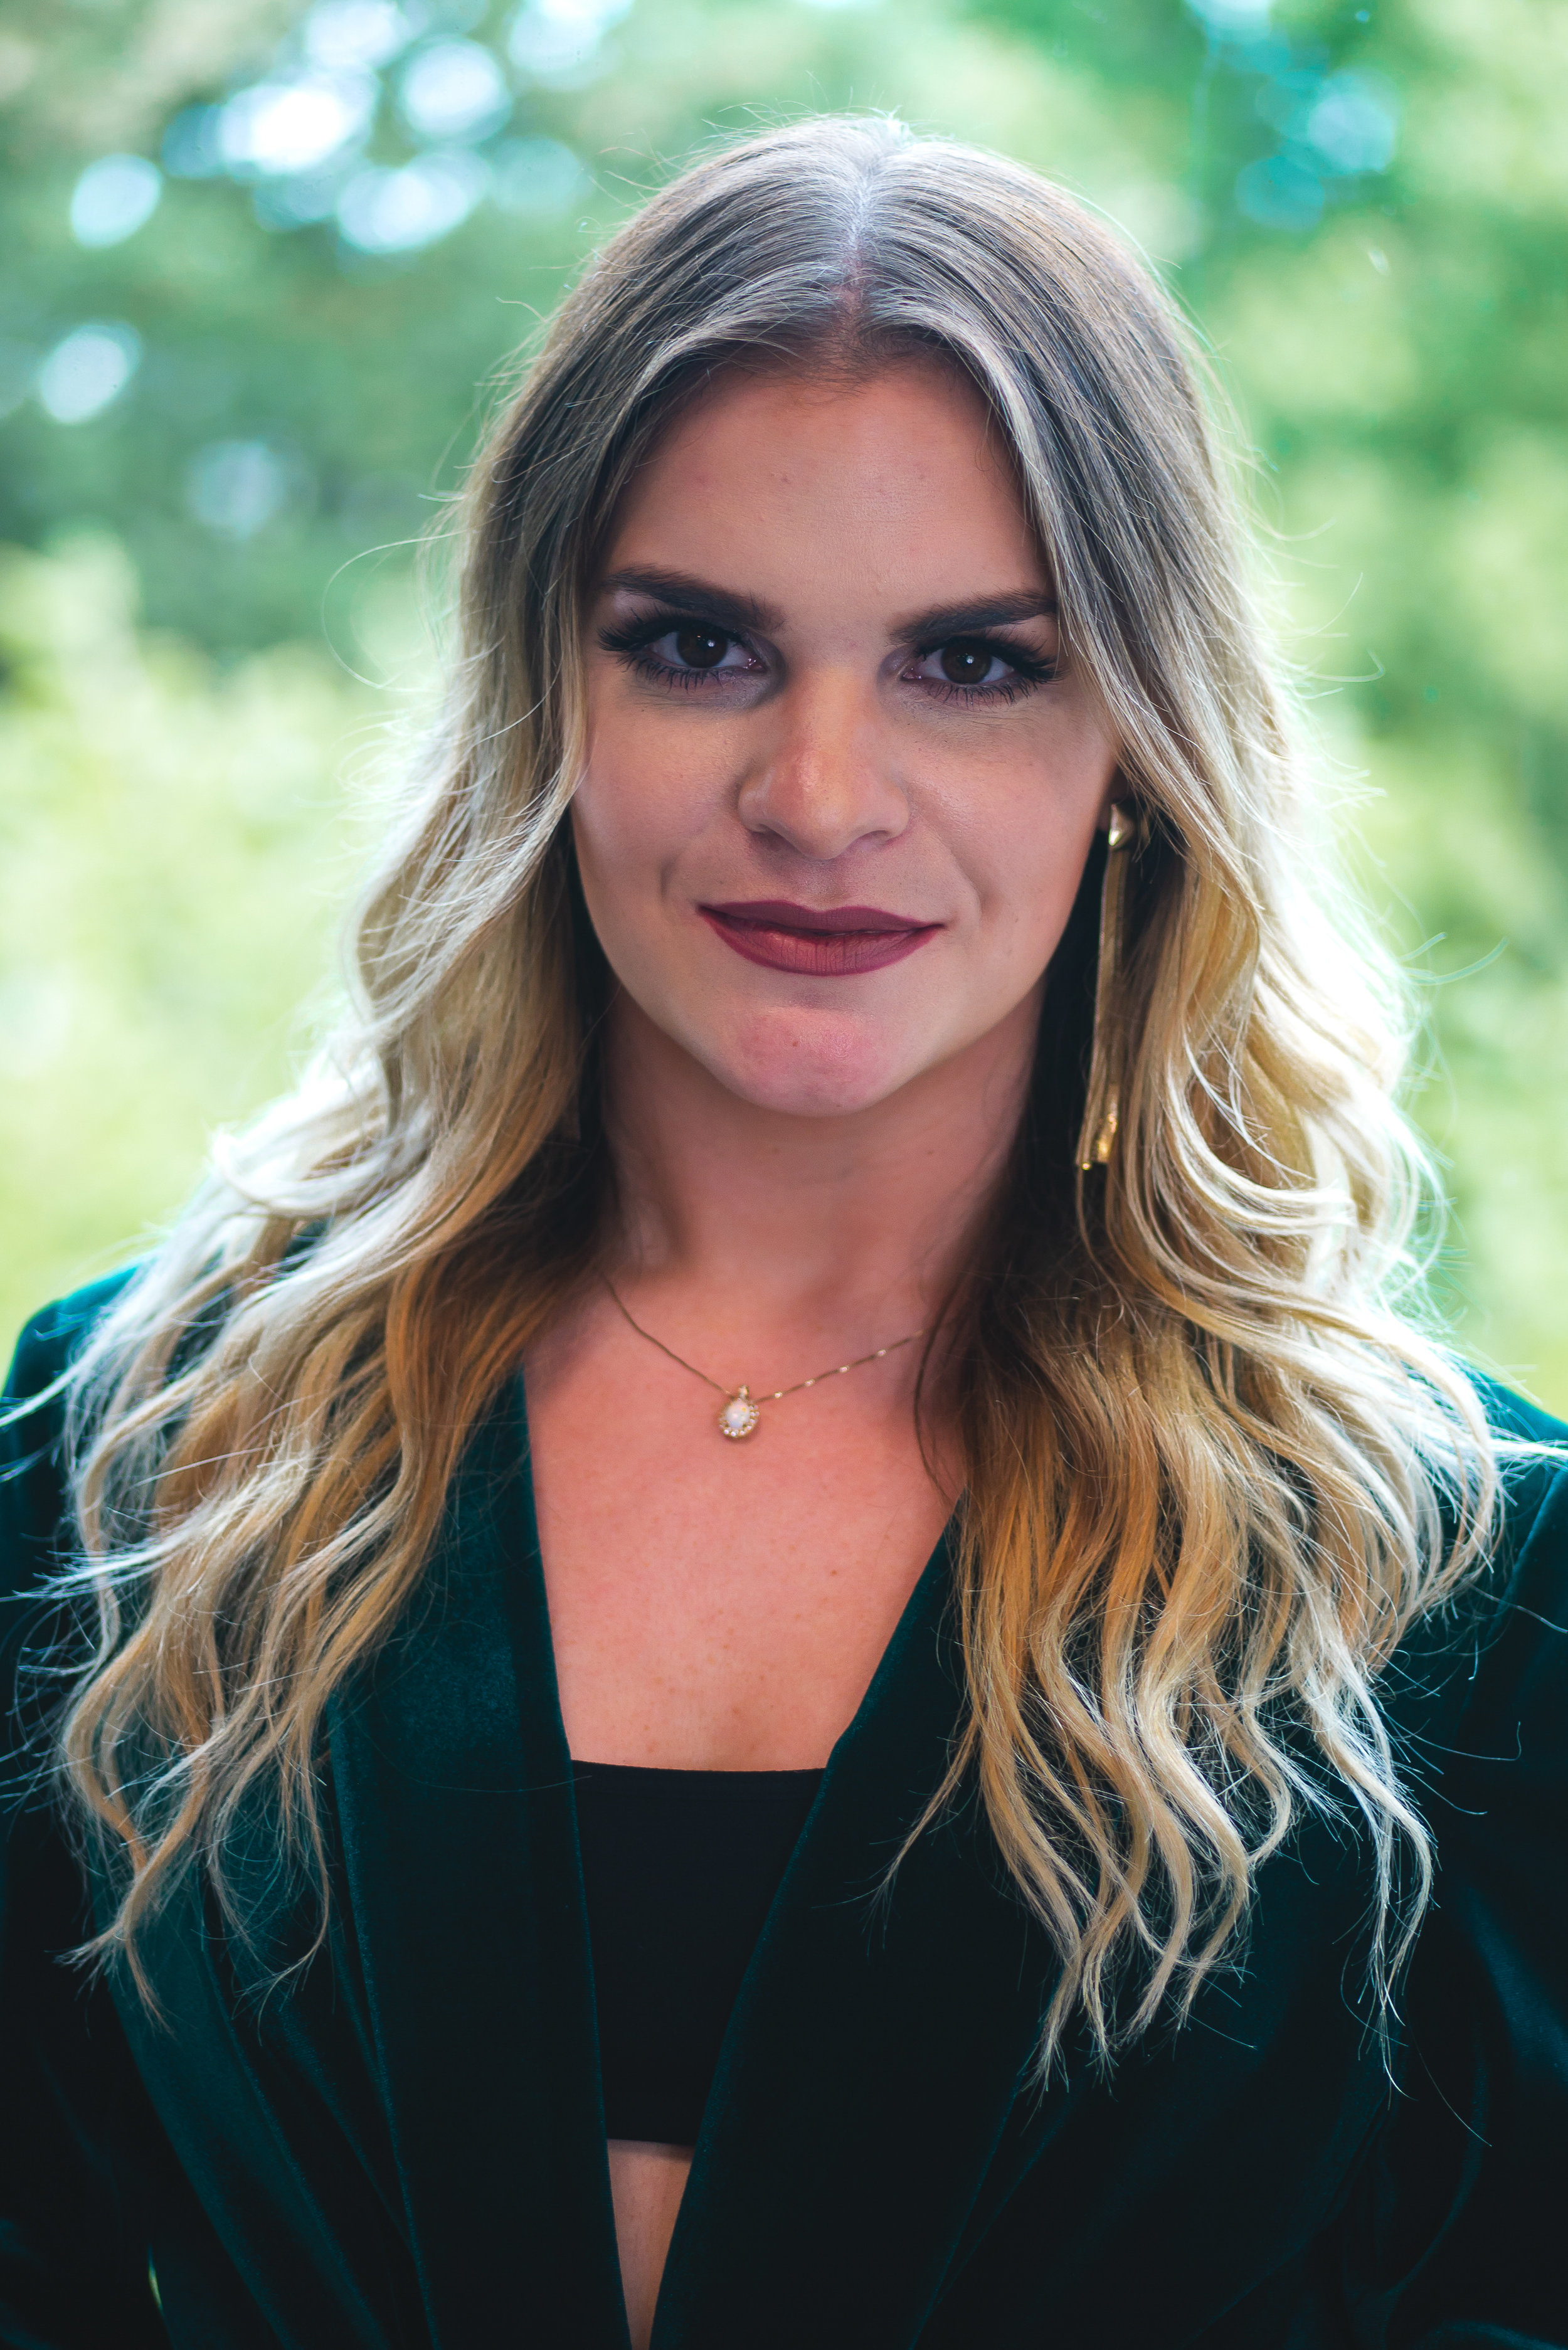 Gina marie Foxhoven -